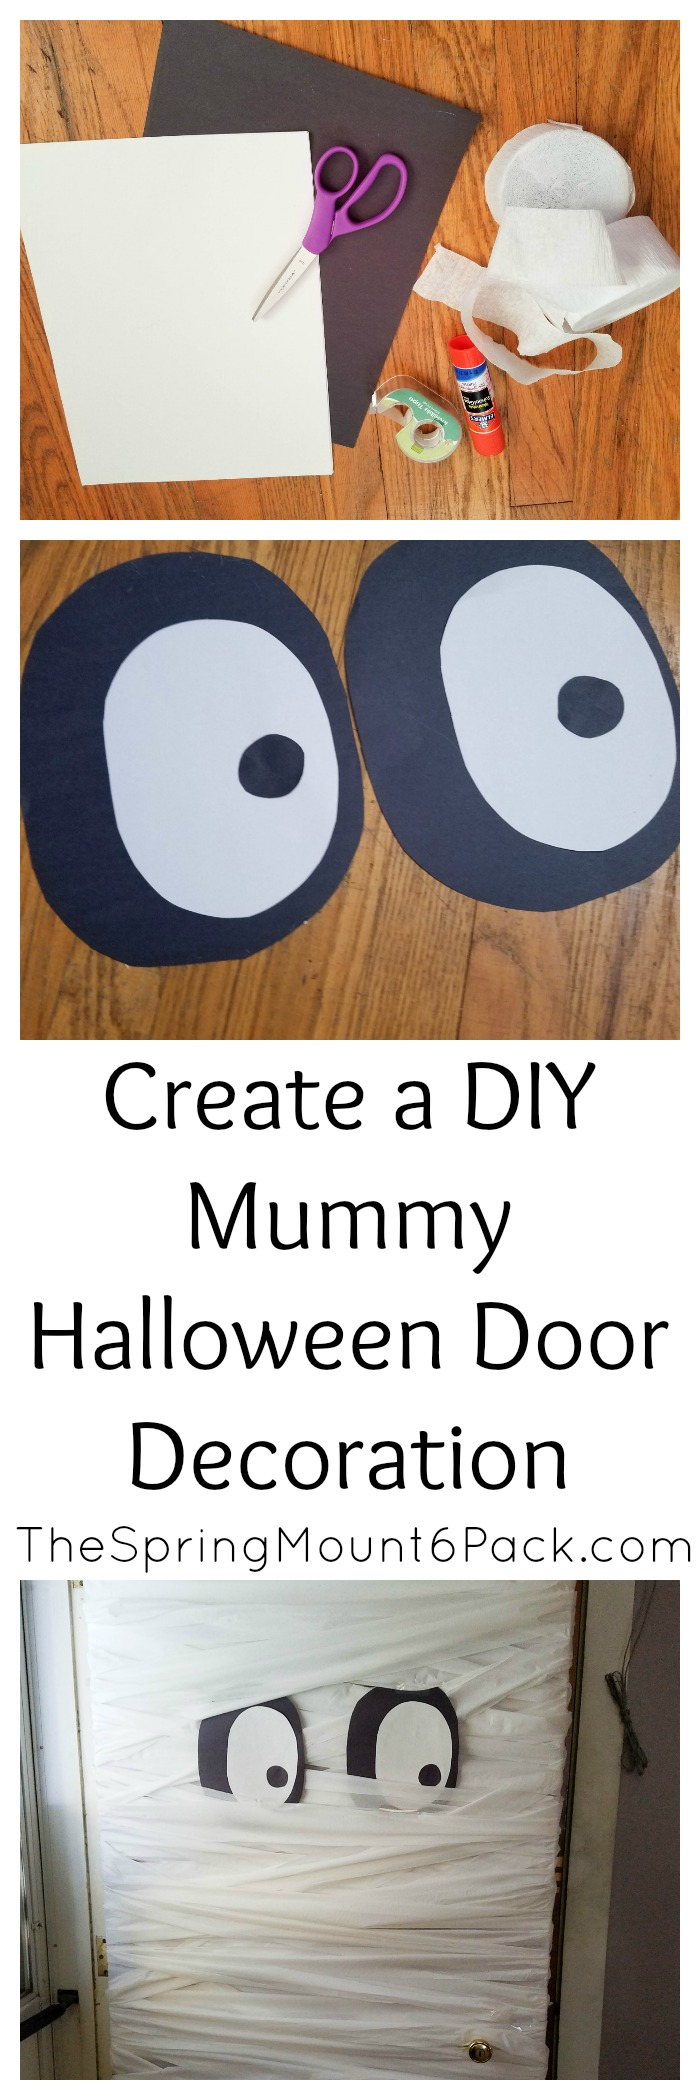 Create this mummy Halloween door decoration with only a few supplies. It is a simple diy Halloween decoration that costs next to nothing and is simple to make